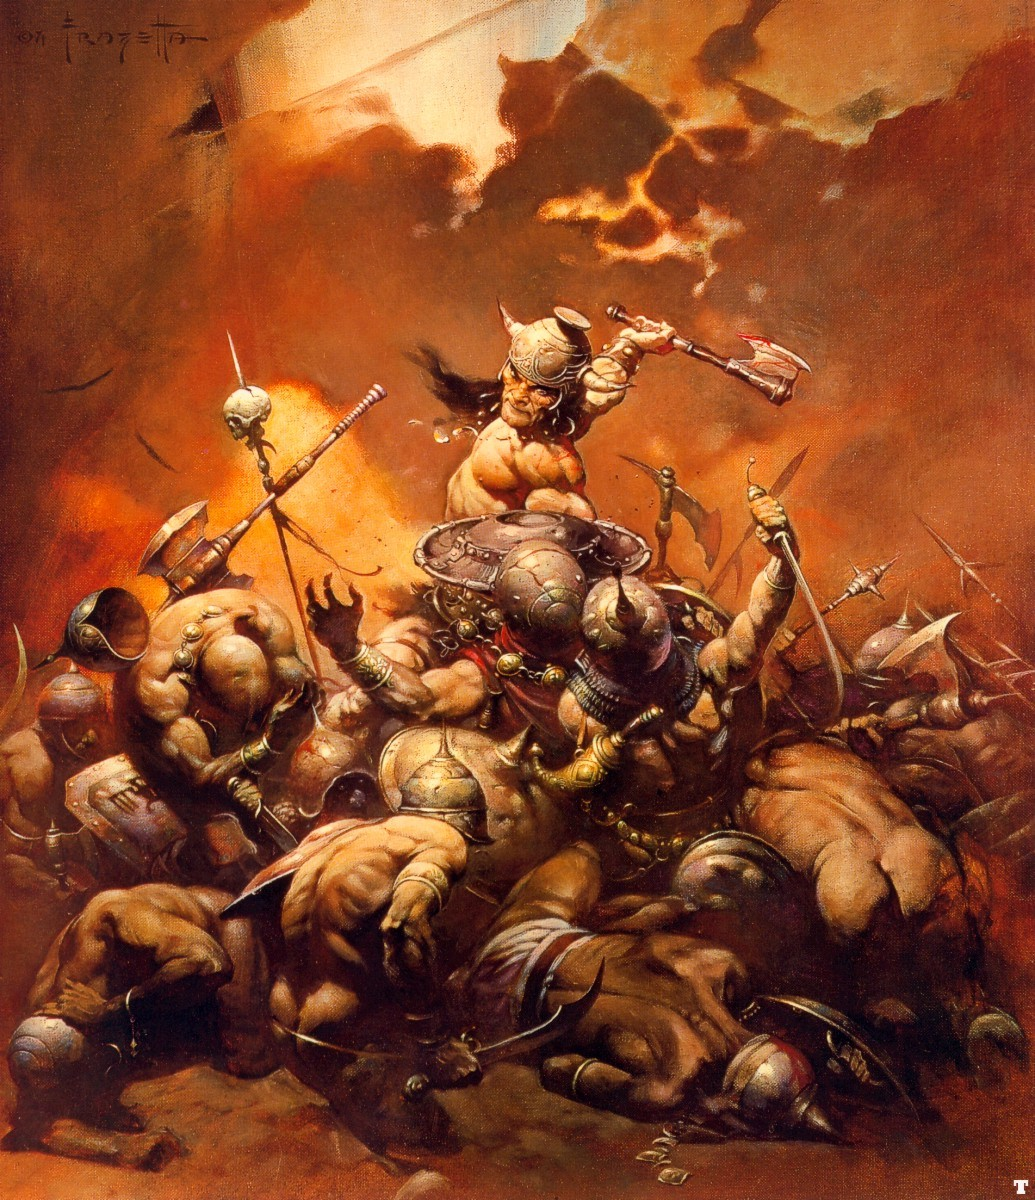 frank_frazetta_thedestroyer1